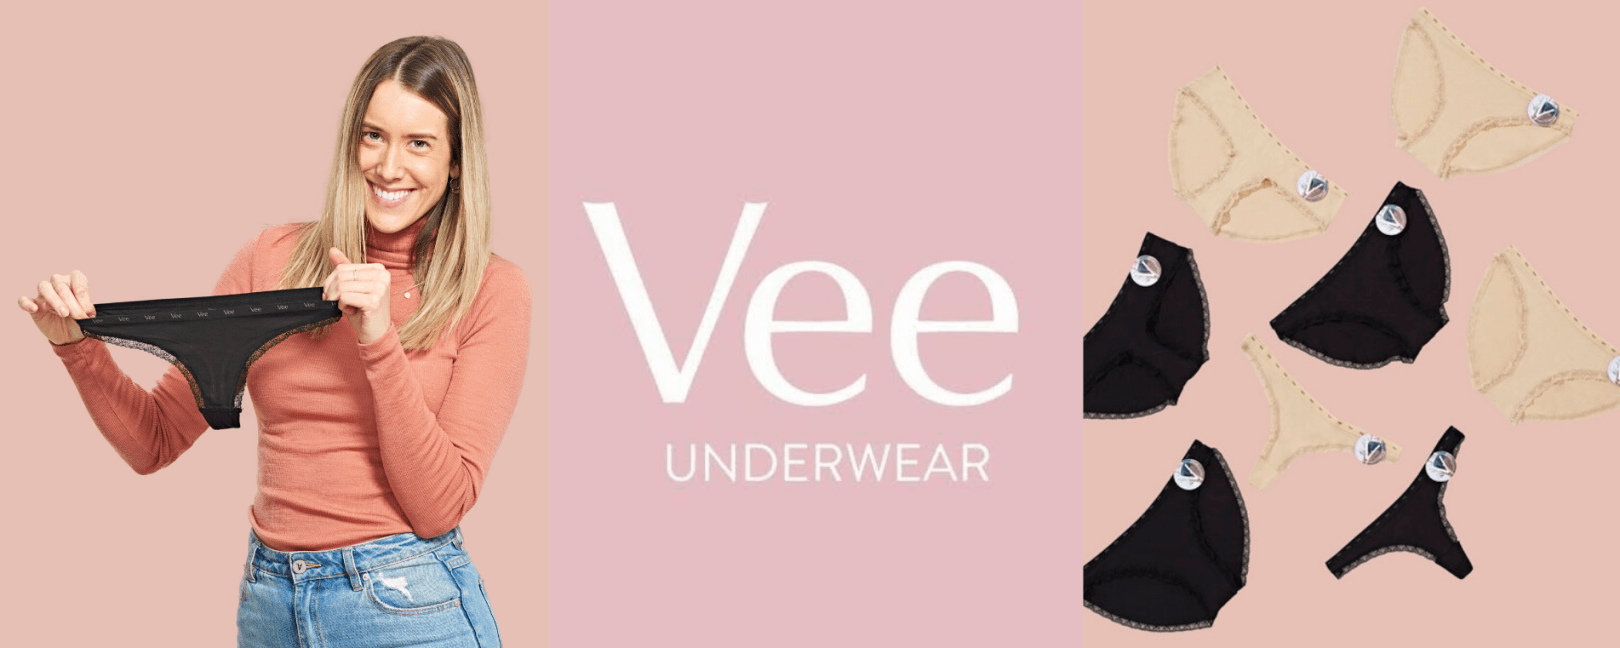 #girltalk with Emma, founder of Vee Underwear - The Daily Pretty